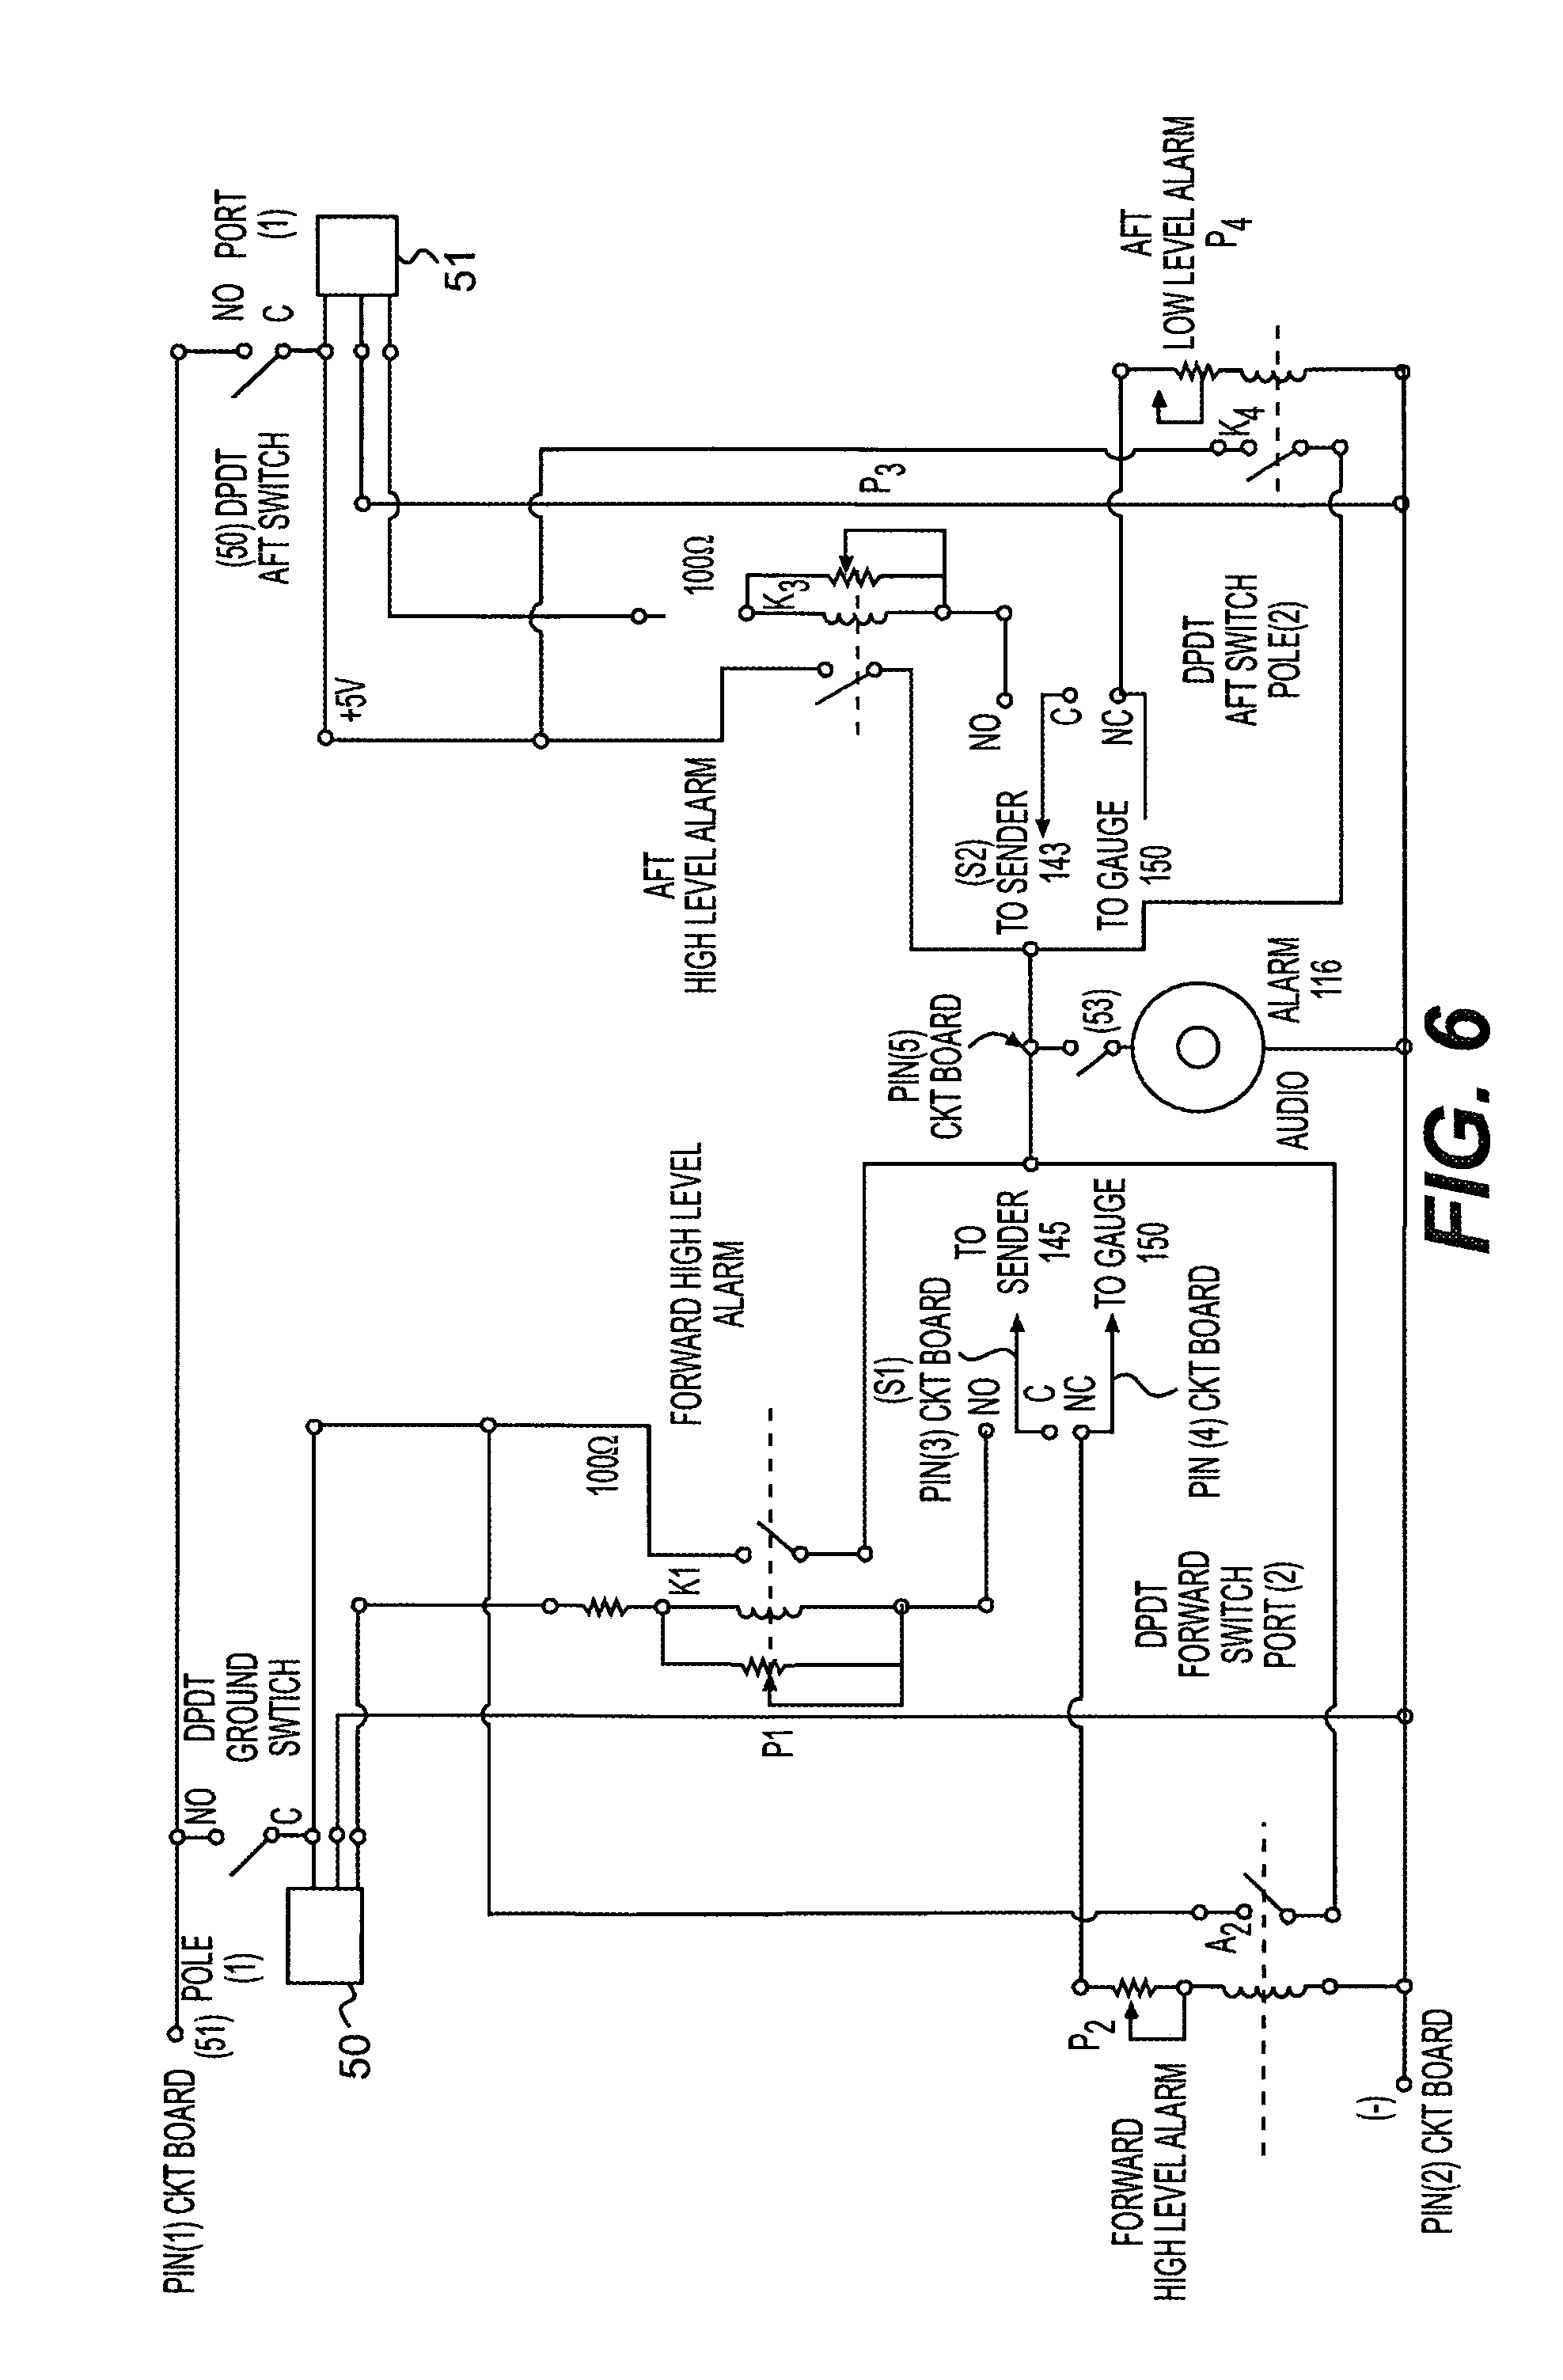 Lester Controls Wiring Diagrams 31 Diagram Images Navigation Light Us06970079 20051129 D00006 Patent Us6970079 High Low Level Alarm Controller Google Patents